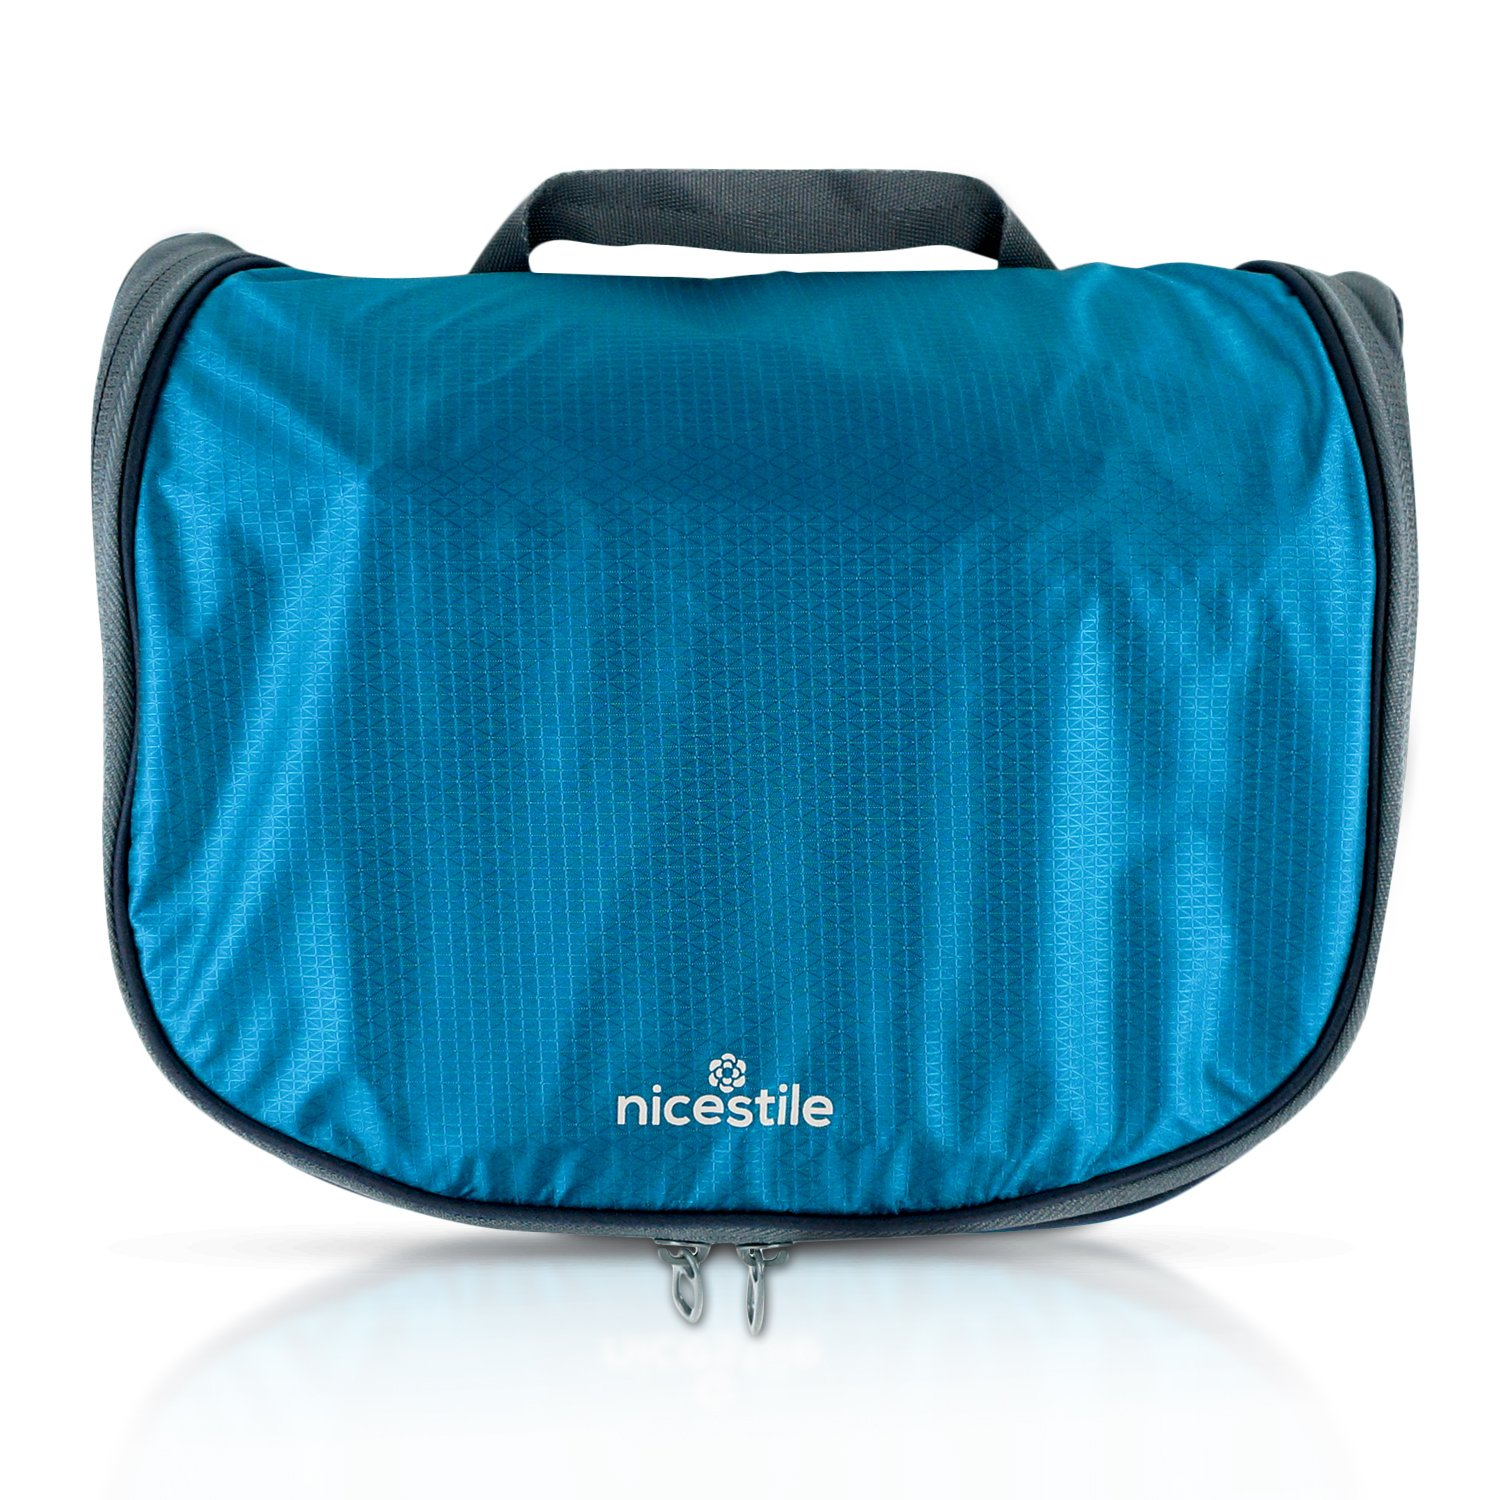 NICESTILE Lightweight Hanging Toiletry Bag for Men and Women - Medium 10.5 x 9.5 x 3.5 in (closed) - Ultralight Toiletry Bag for Business Travel and Backpacking